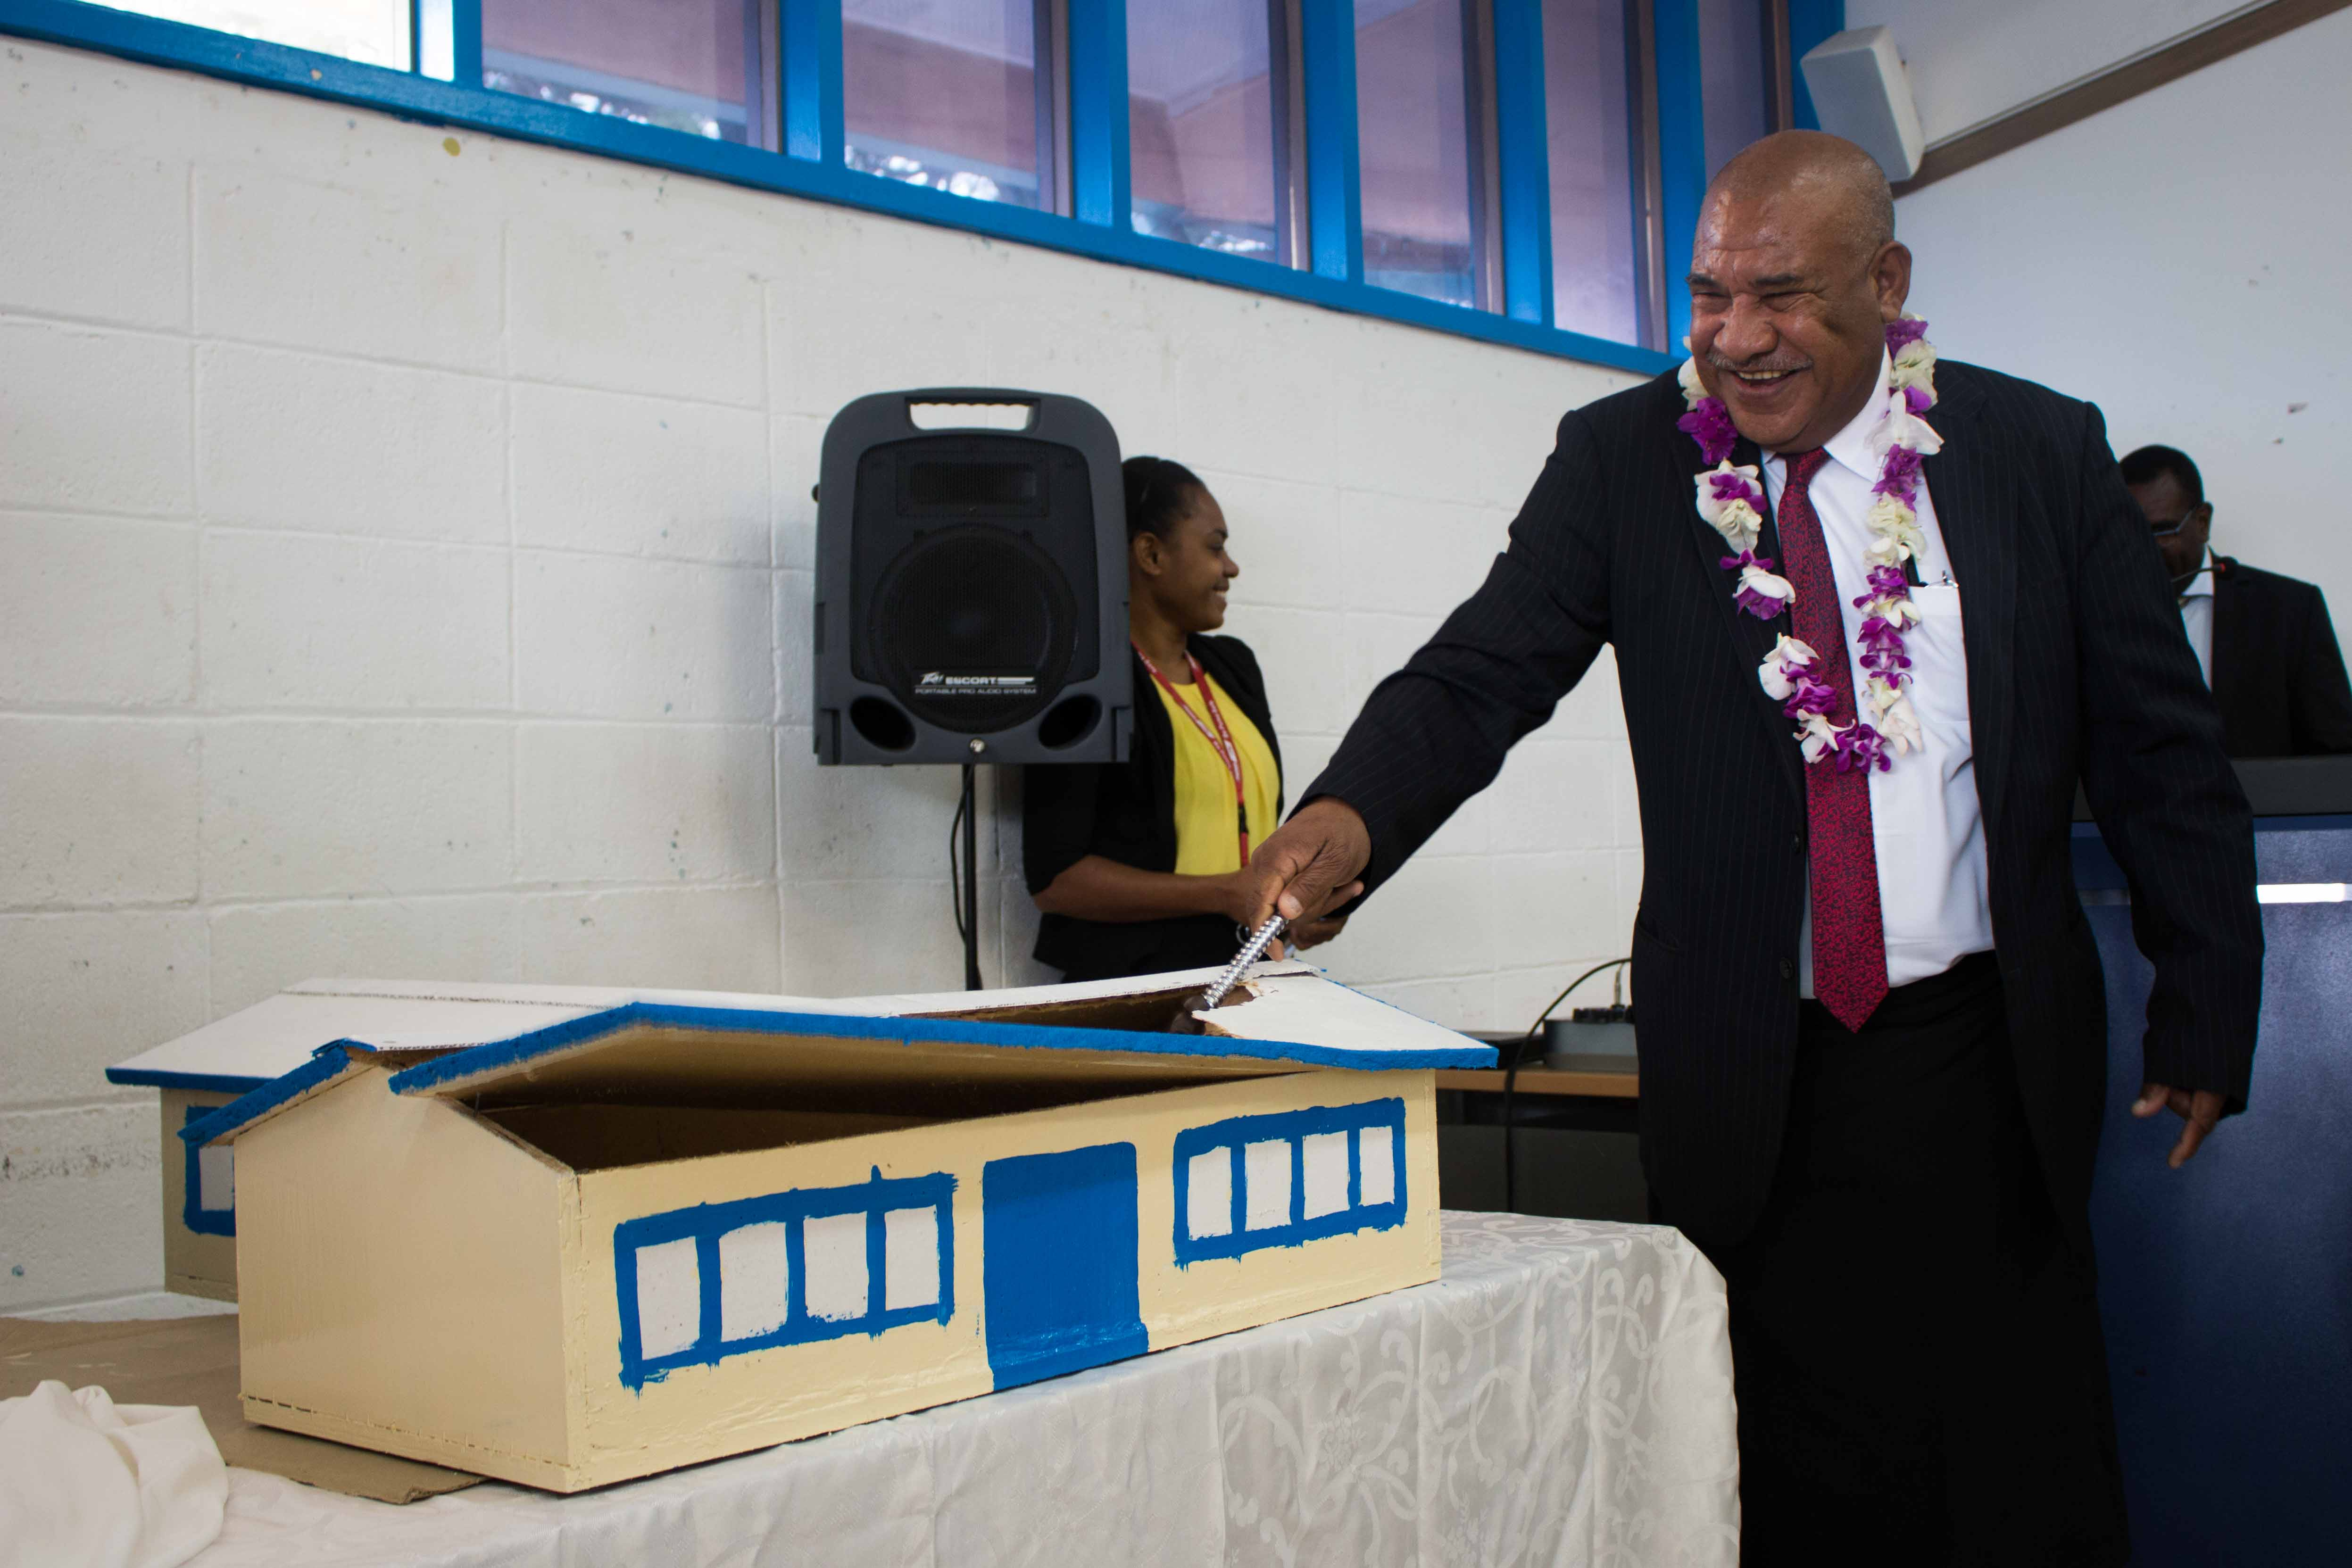 DPM Secretary Kali symbolically demolished a model of the old PNGIPA Library that is to be replaced